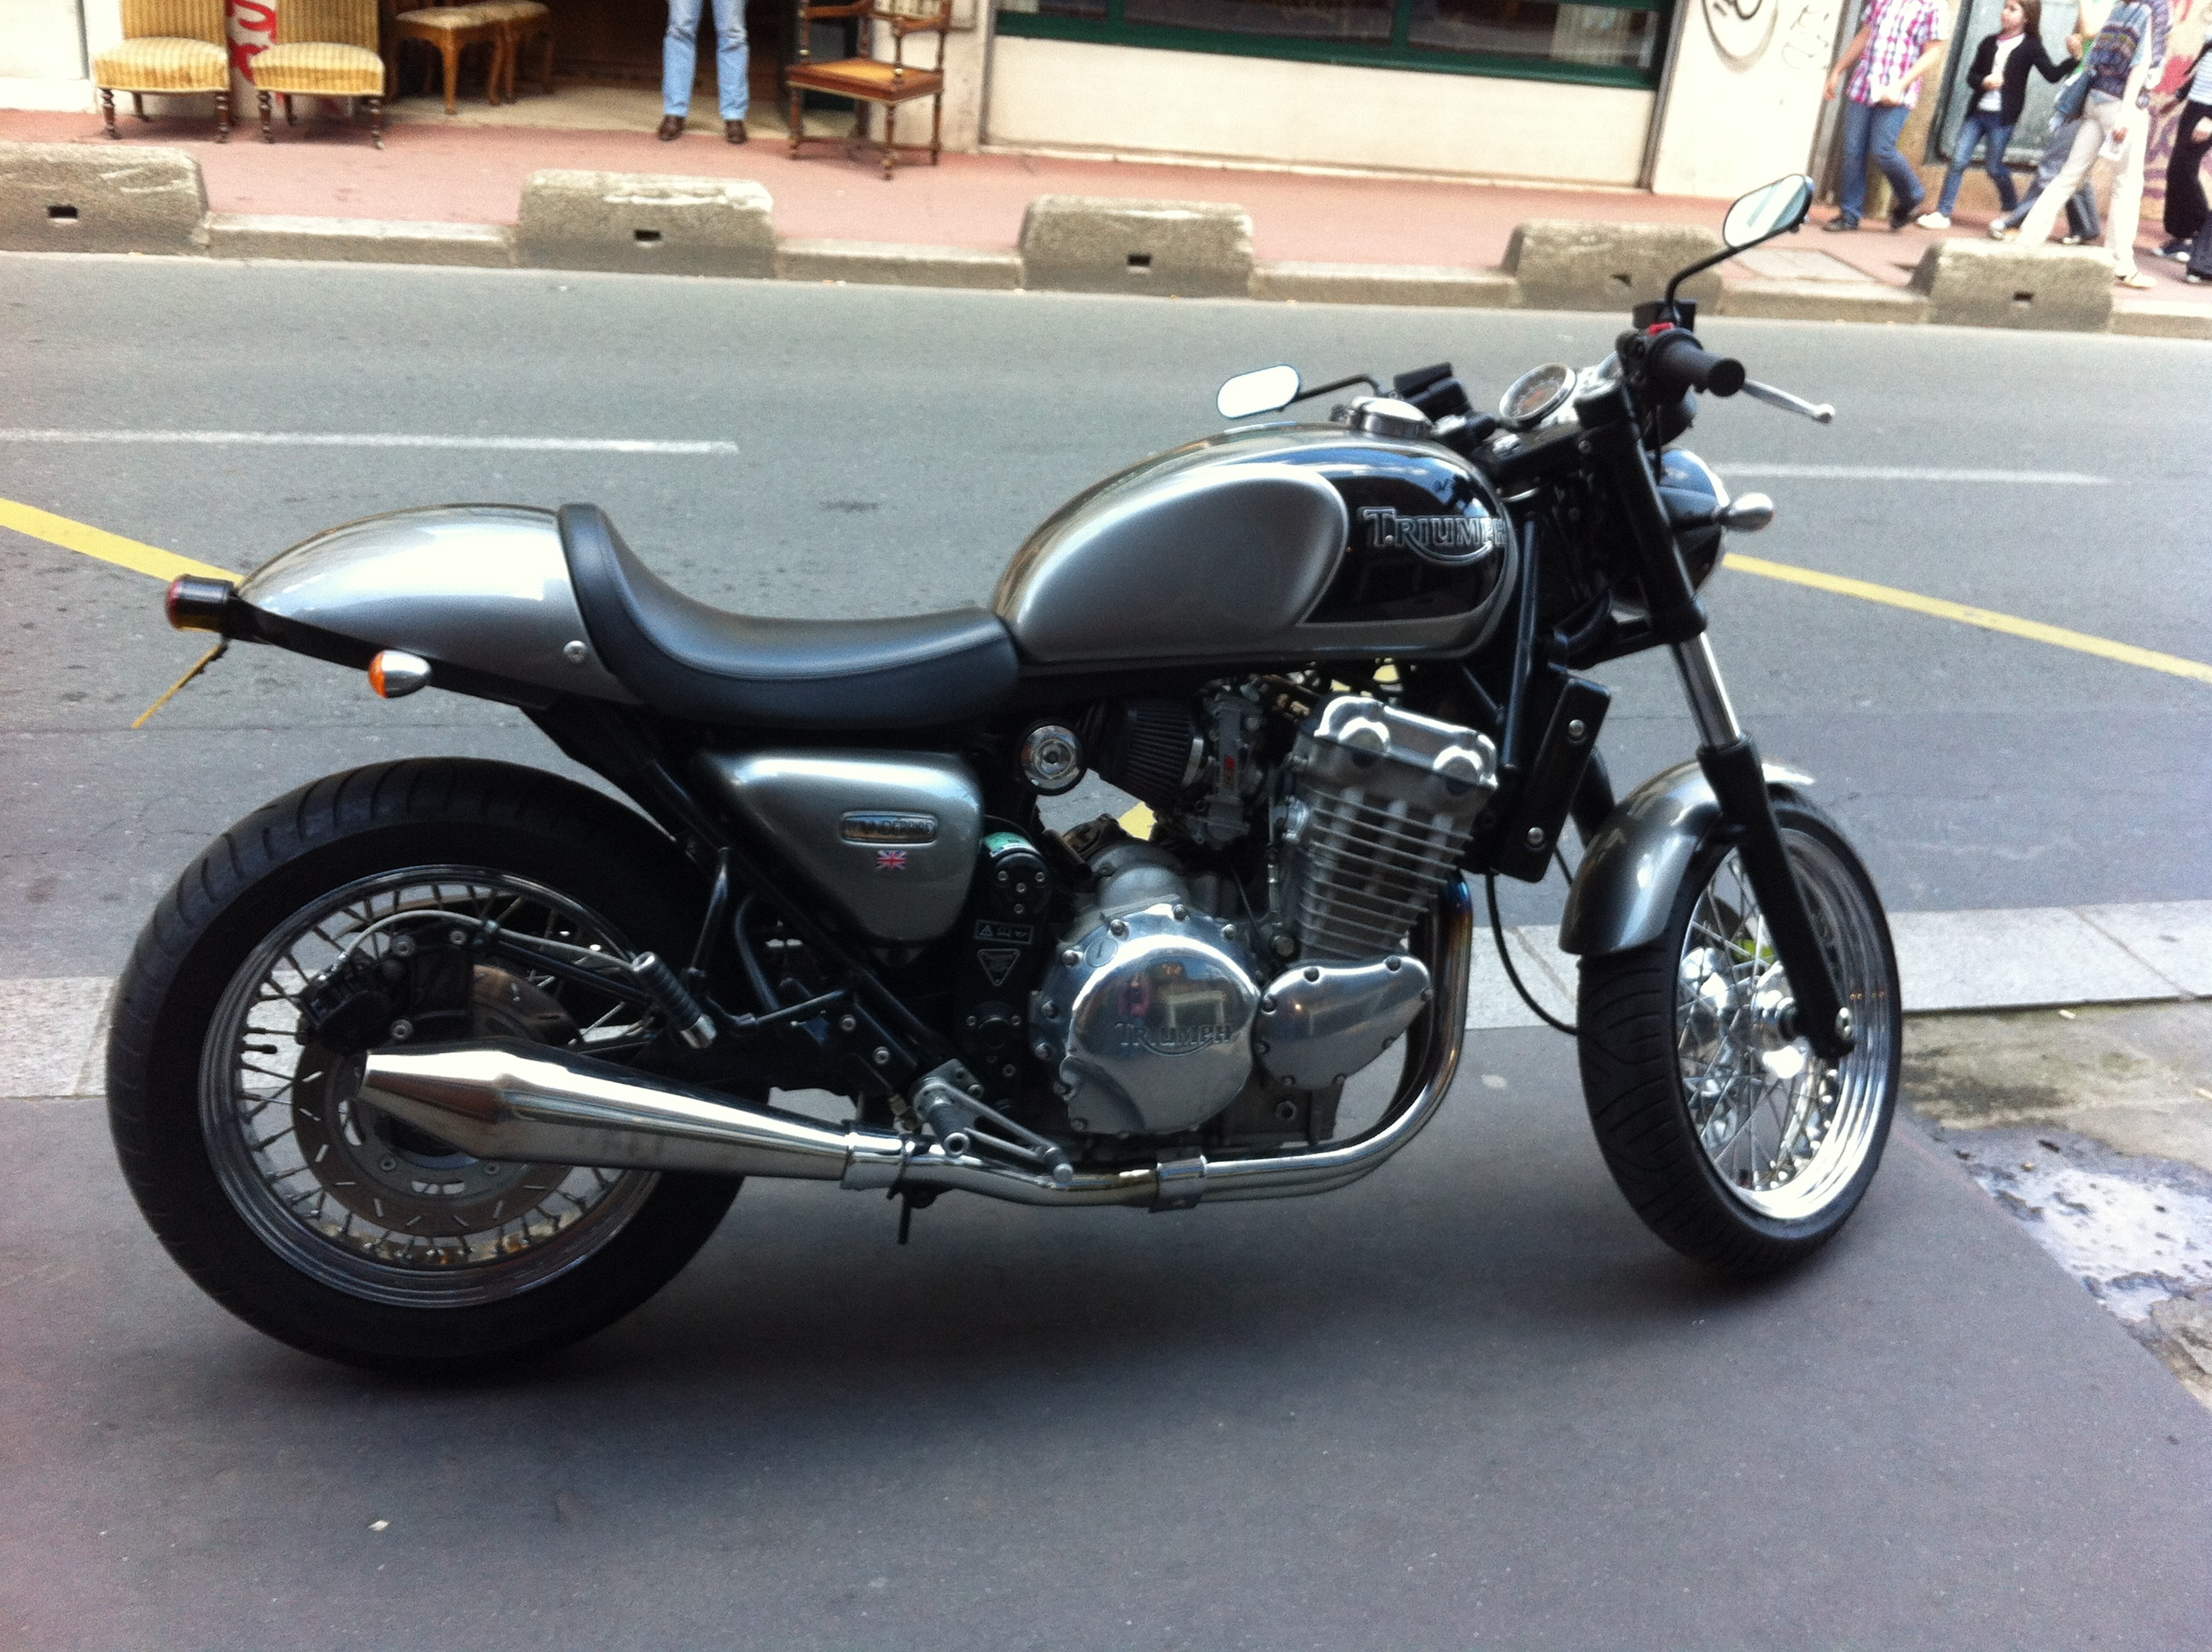 Triumph Thunderbird Cafe Racer wallpapers, Vehicles, HQ